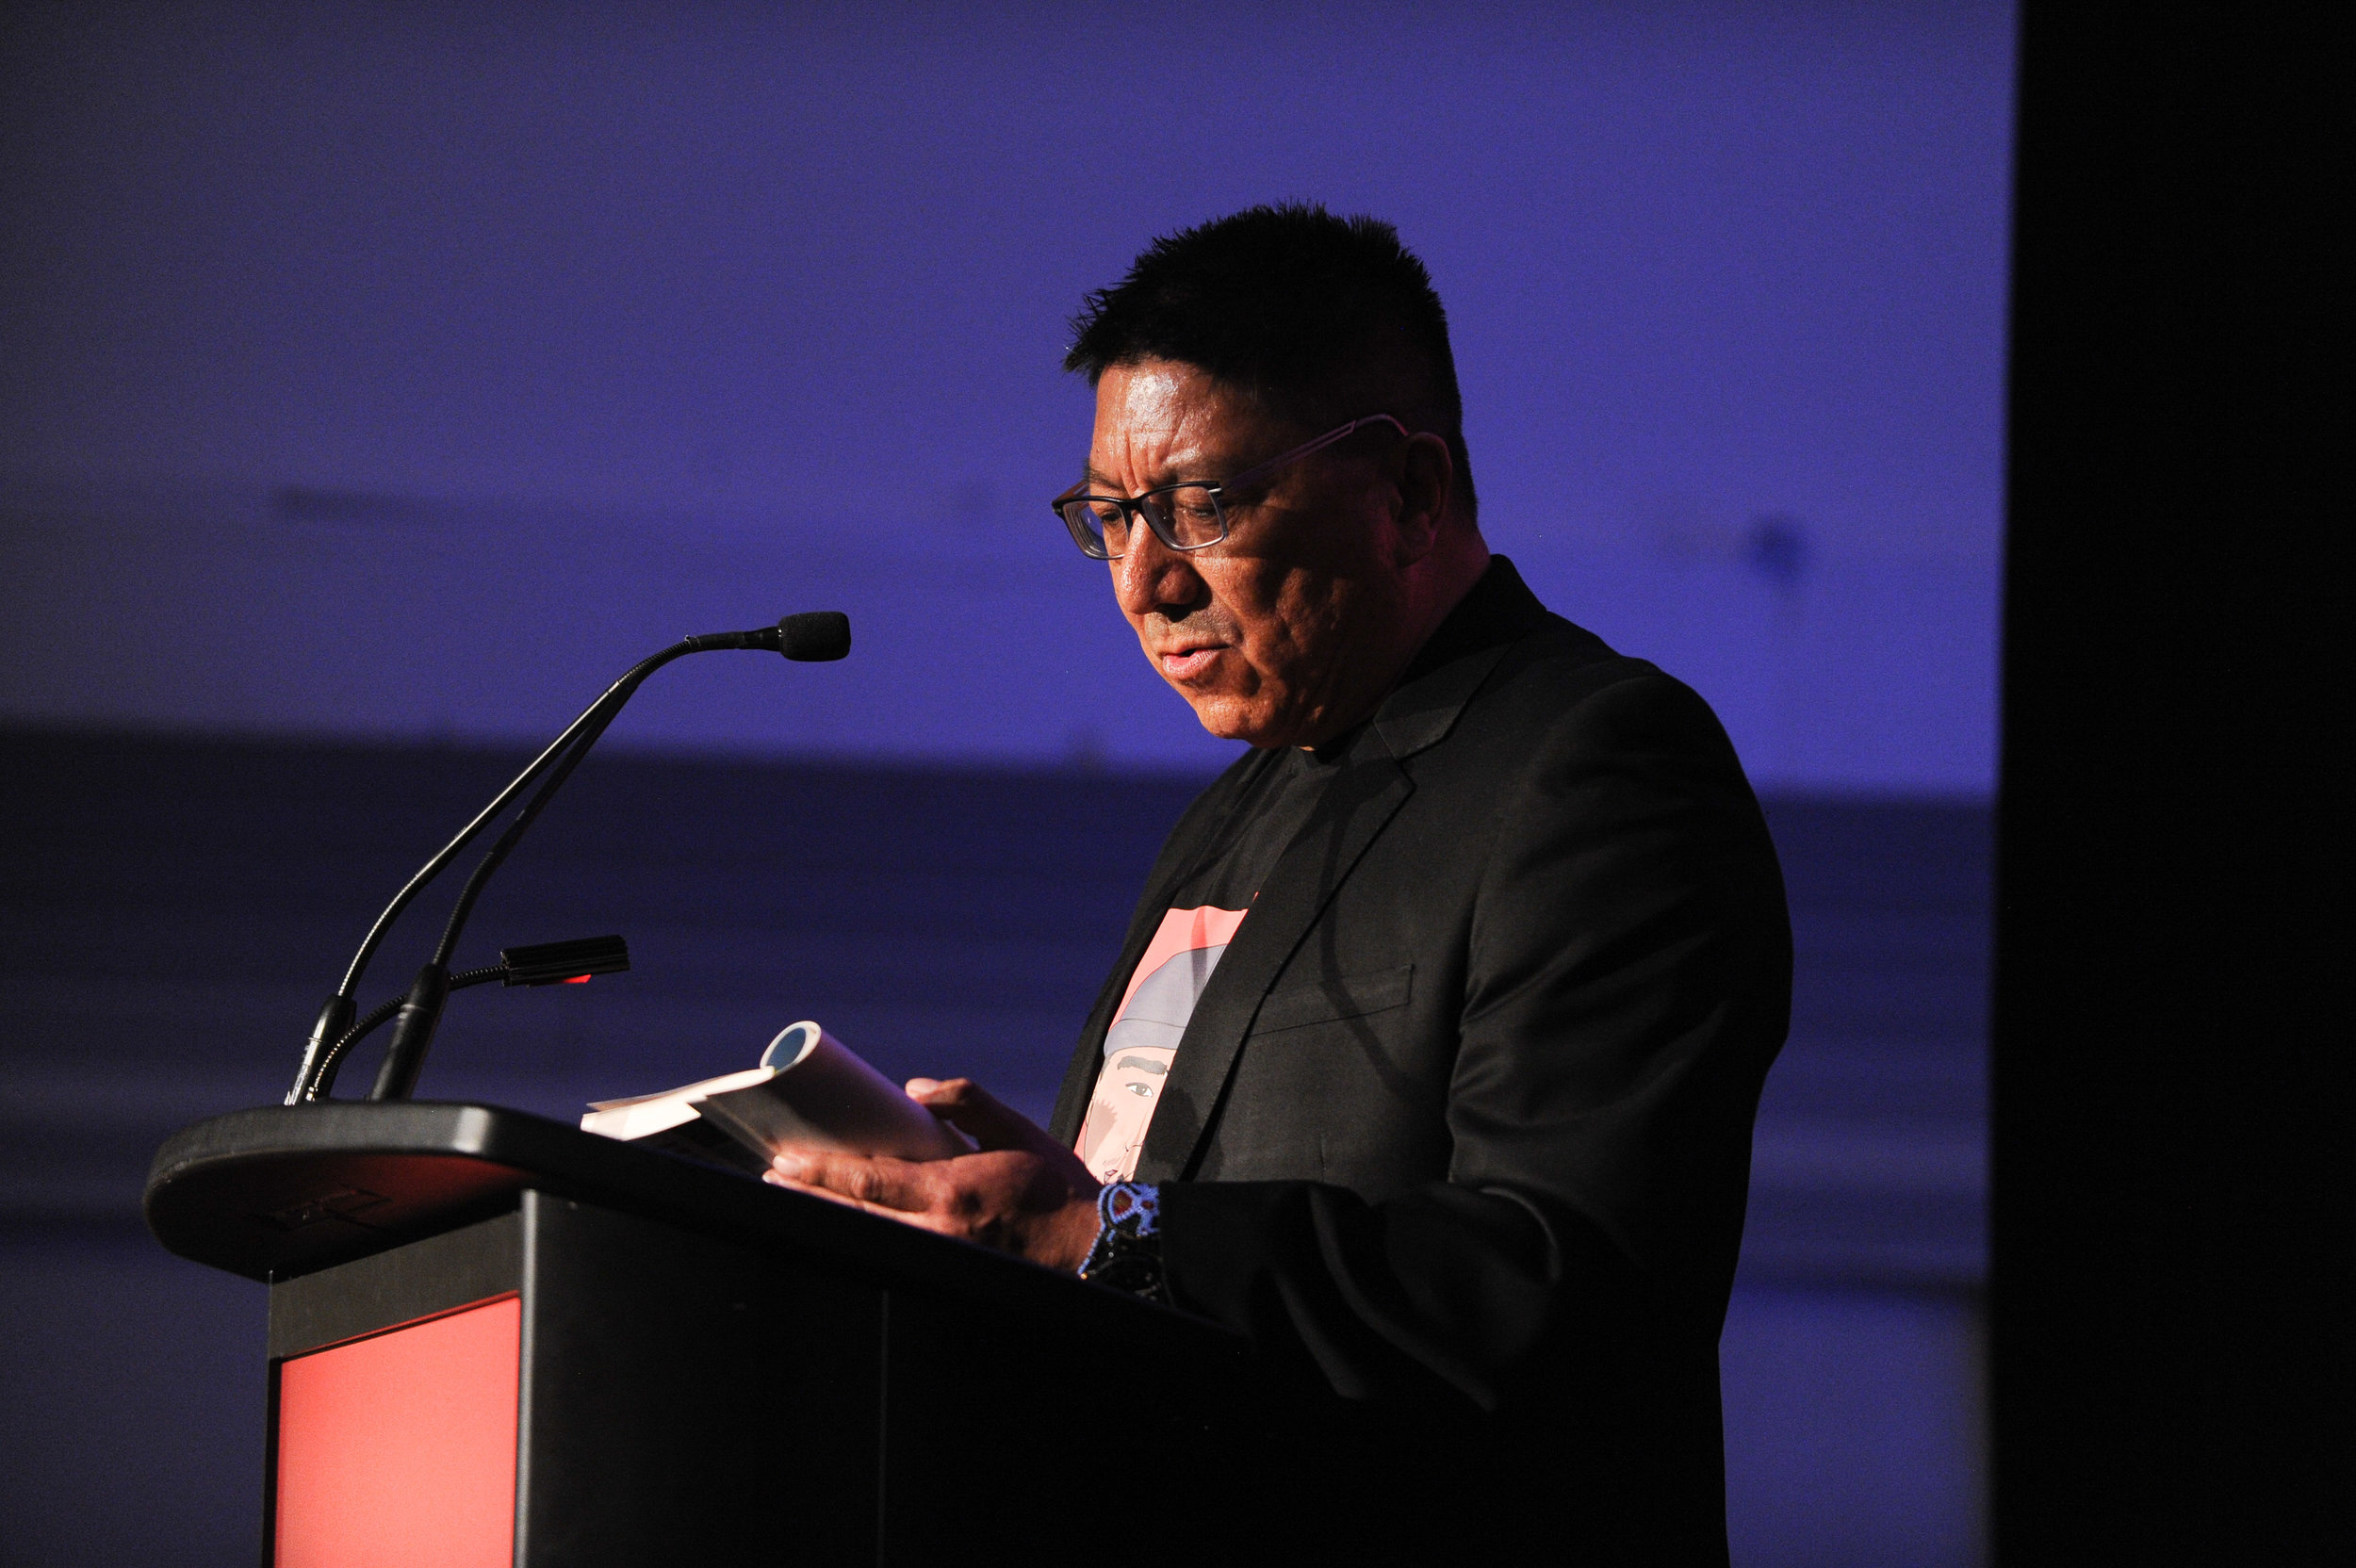 Grand Chief Alvin Fiddler | Nishnawbe Aski Nation - Grand Chief Alvin Fiddler read from Indian Horse by Richard Wagamese, and told the story of his early life in Muskrat Dam.